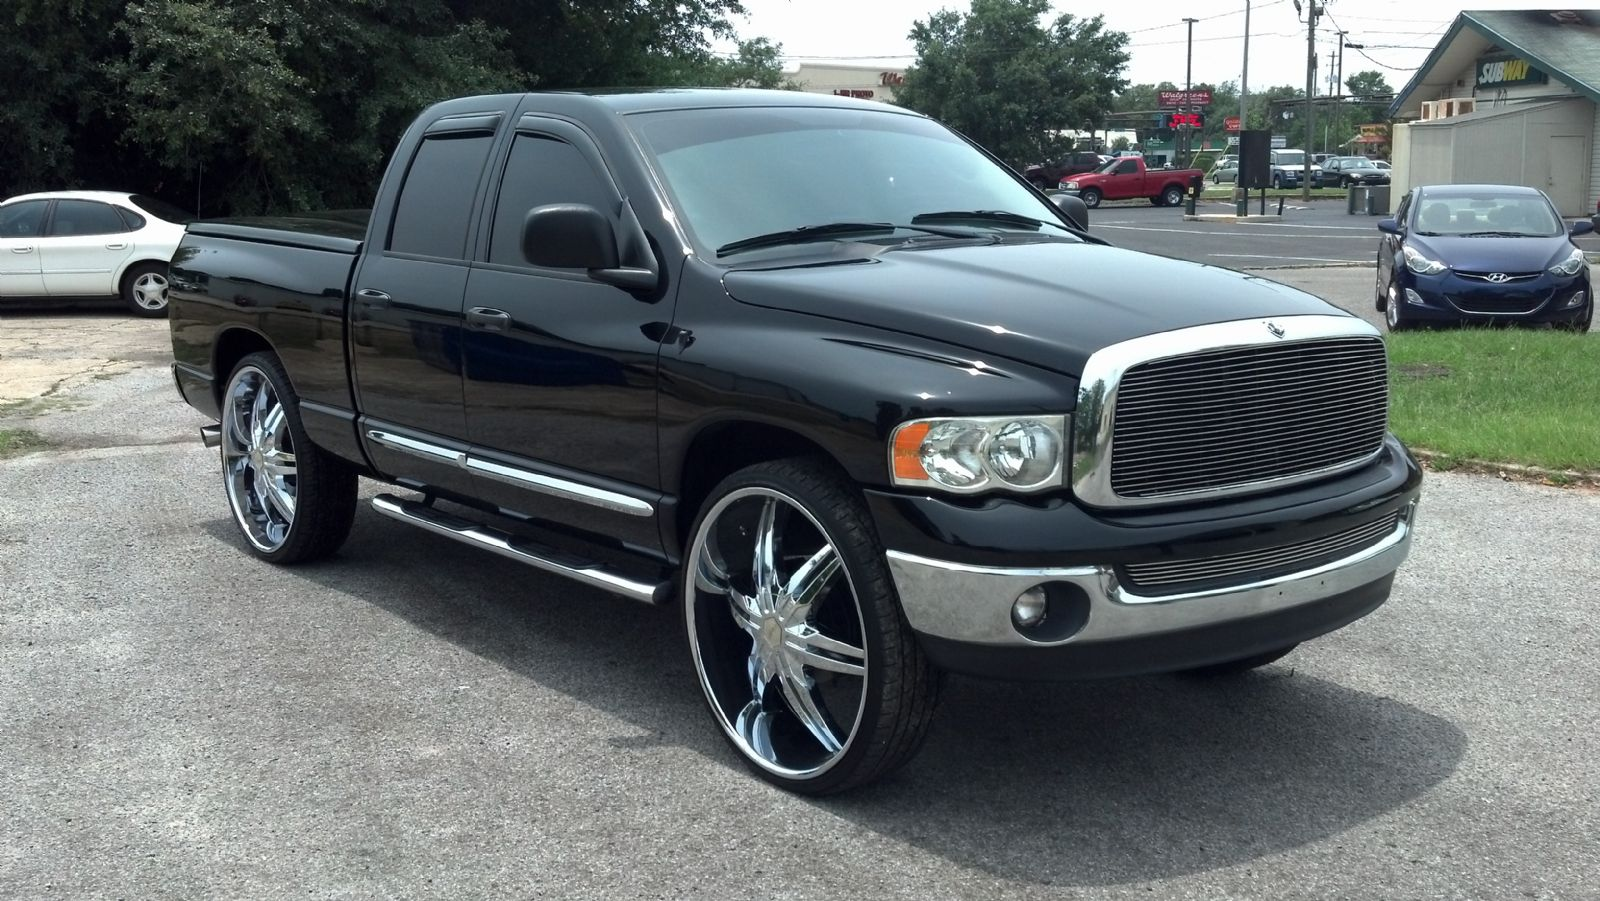 2005 dodge ram 1500 big horn for sale pensacola florida. Cars Review. Best American Auto & Cars Review